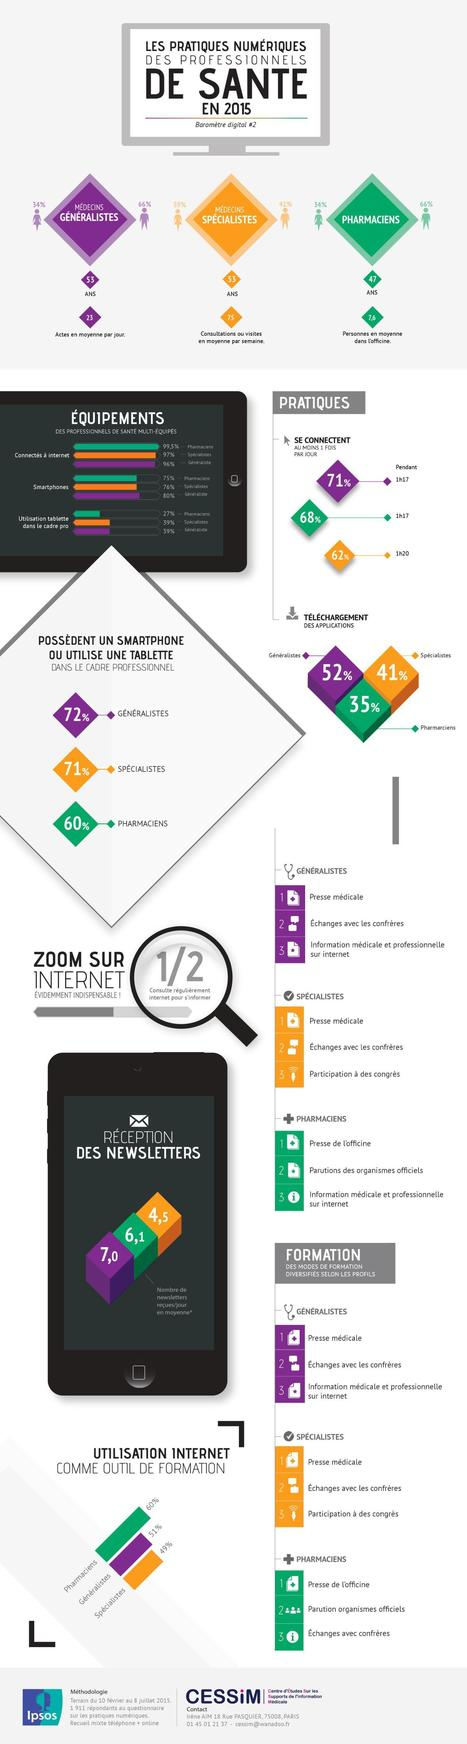 Usages digitaux des professionnels de santé en 2015 | #eHealthPromotion, #web2salute | Scoop.it